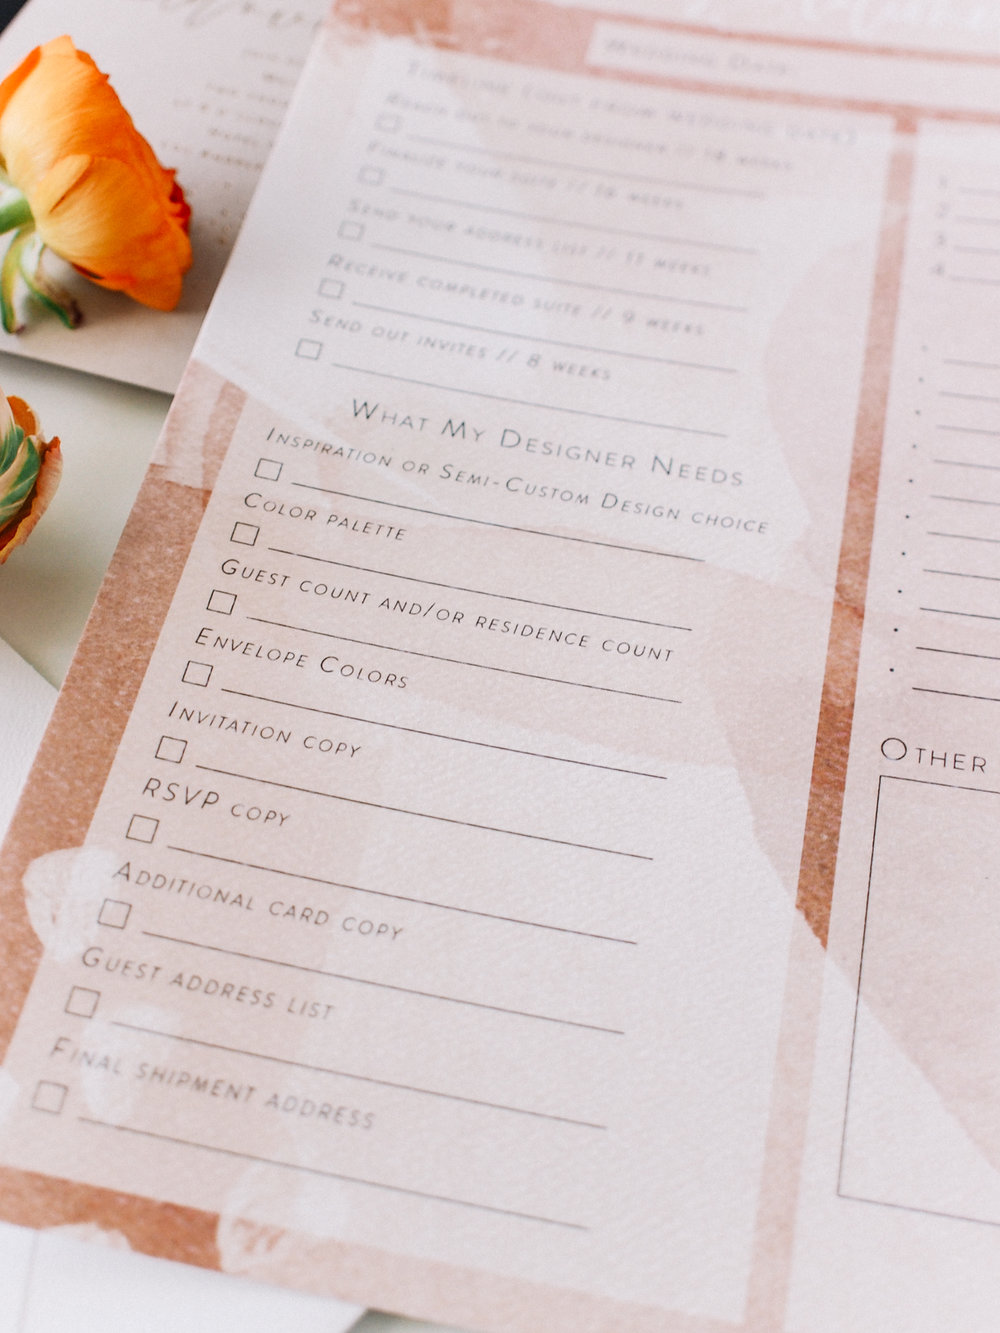 Print this free wedding stationery checklist if you aren't sure where to start | A Fabulous Fete